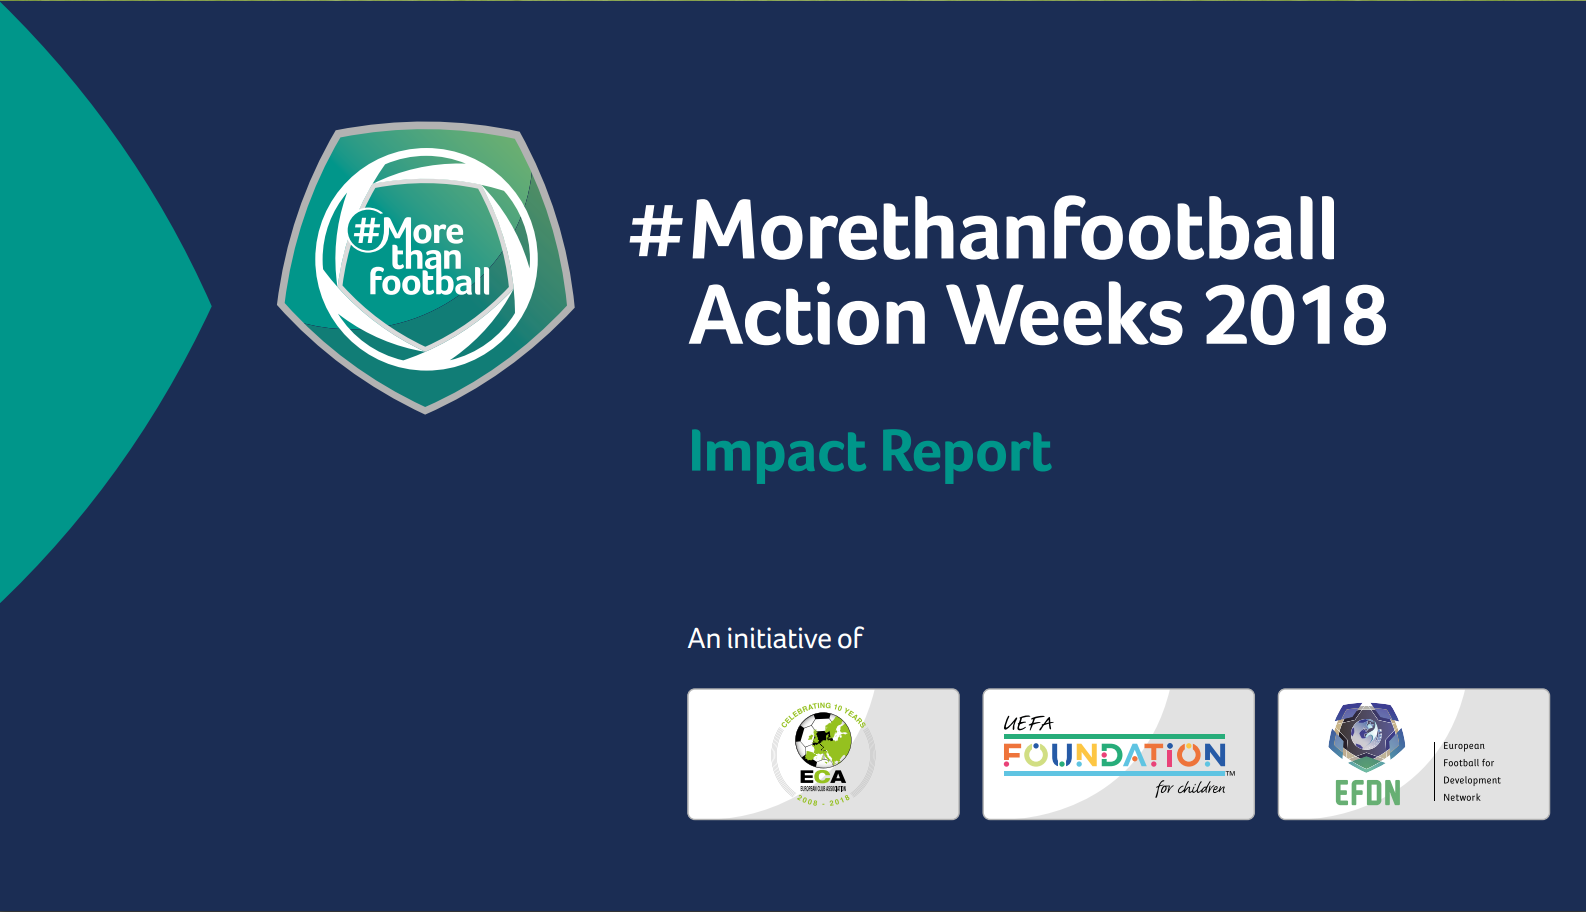 #Morethanfootball Action Weeks Impact Report 2018